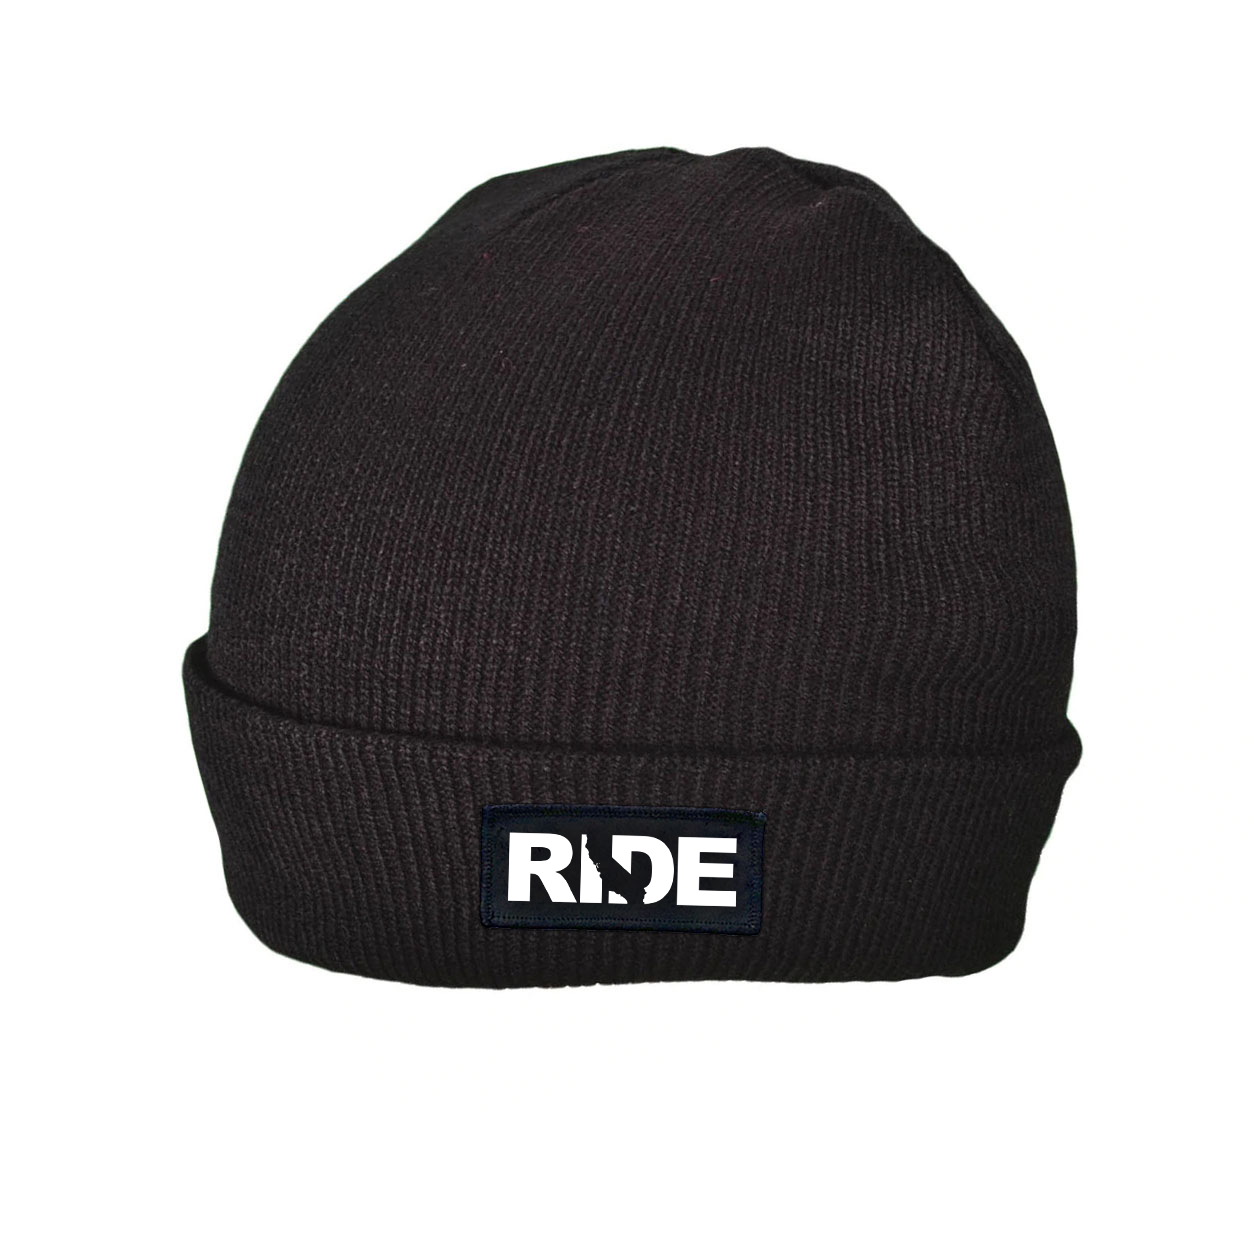 Ride California Night Out Woven Patch Skully Youth Beanie Black (White Logo)